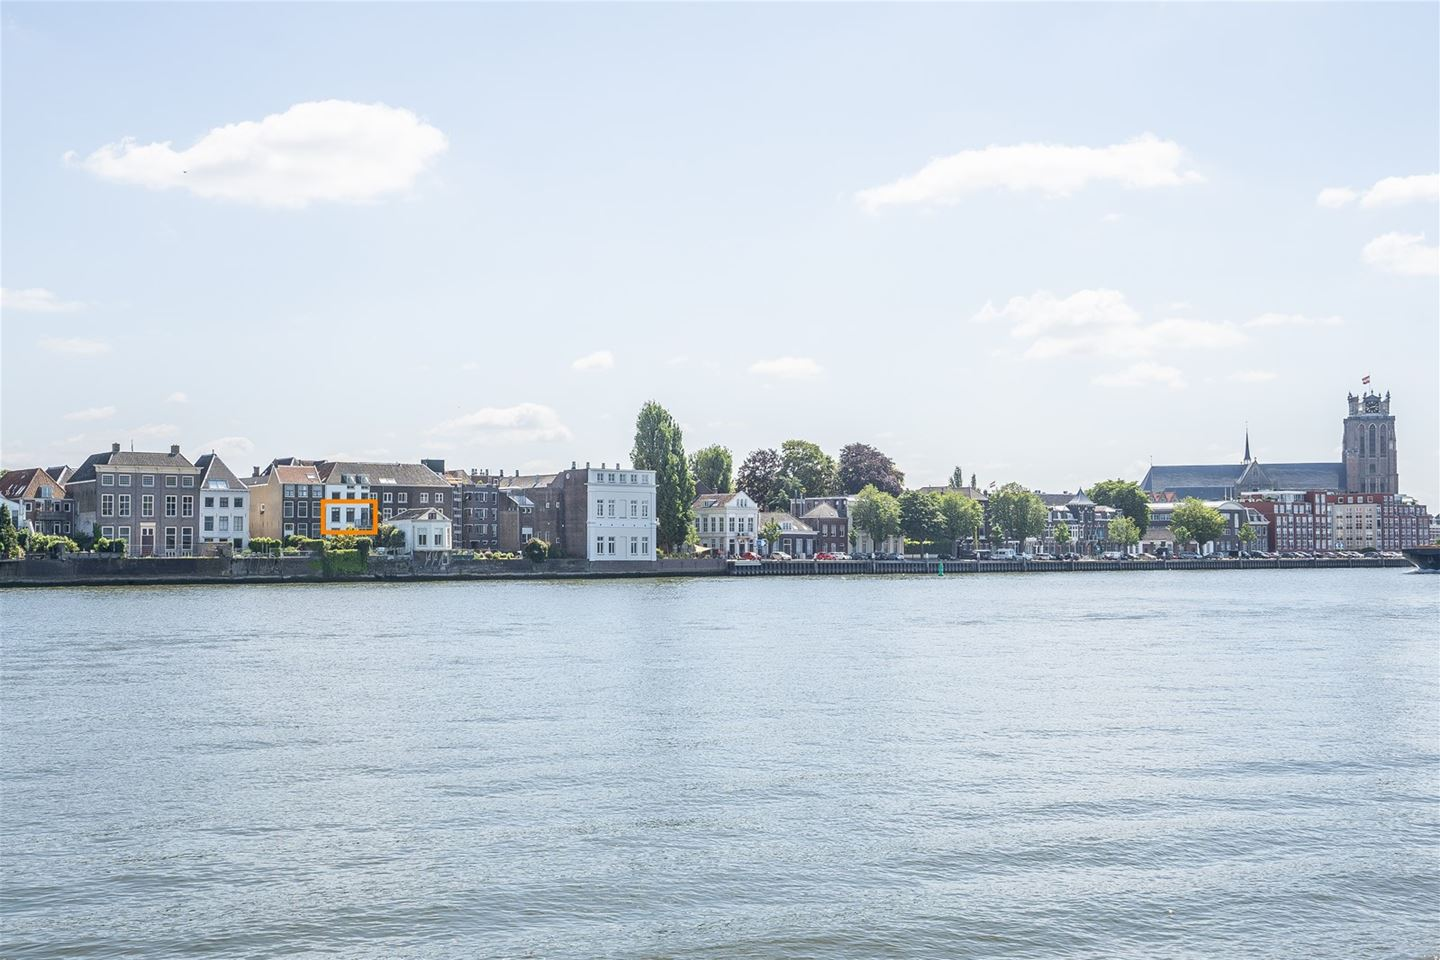 View photo 3 of Wolwevershaven 42 H